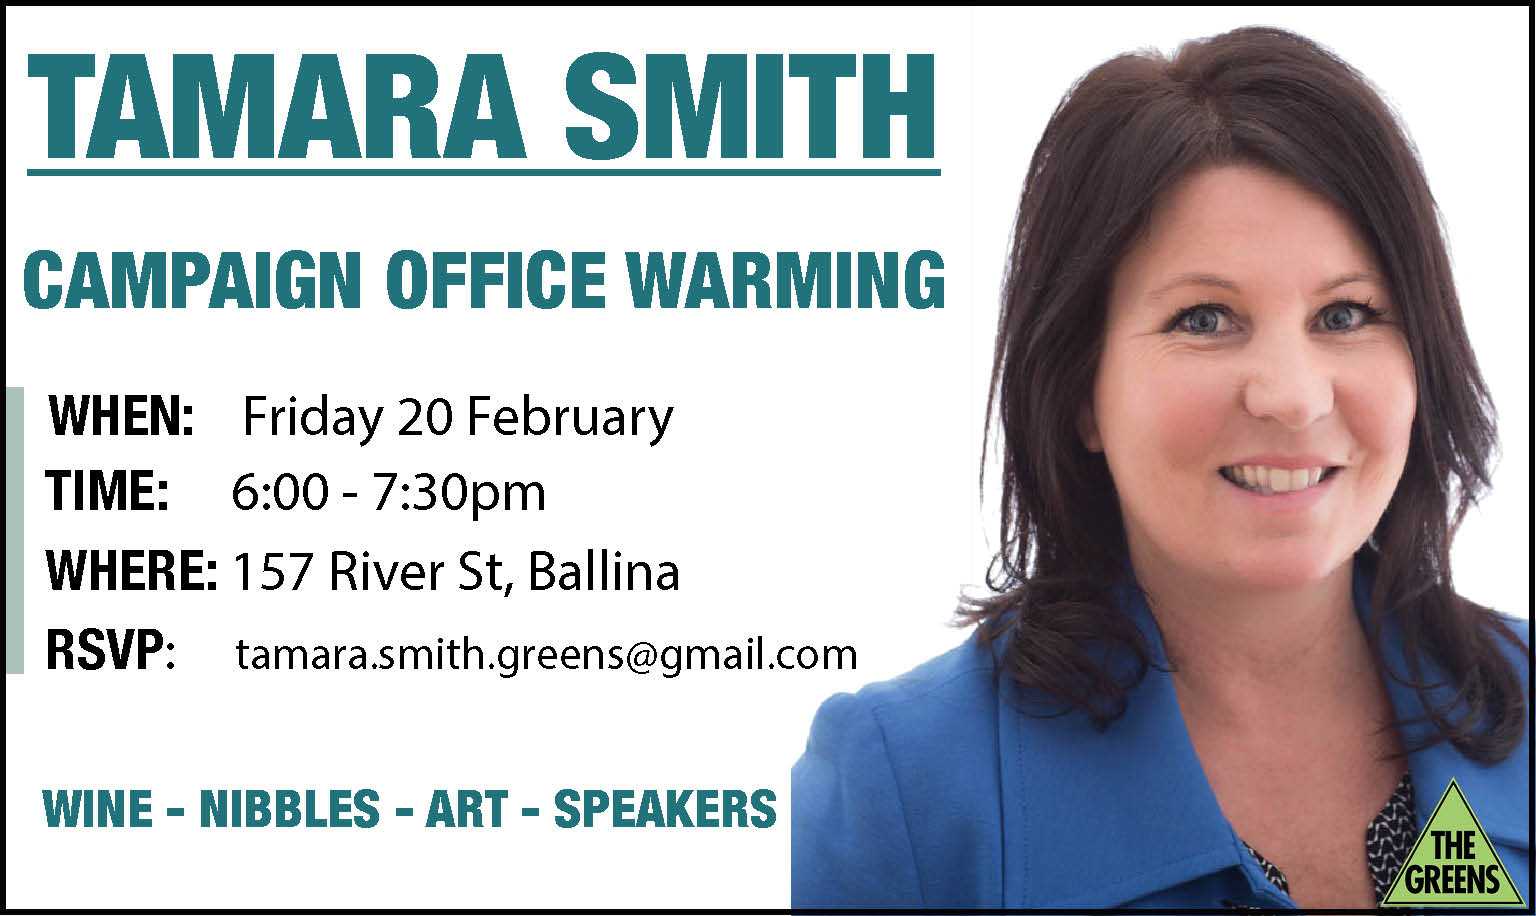 Office_Warming_Invite_-_Tamara_Smith.jpg